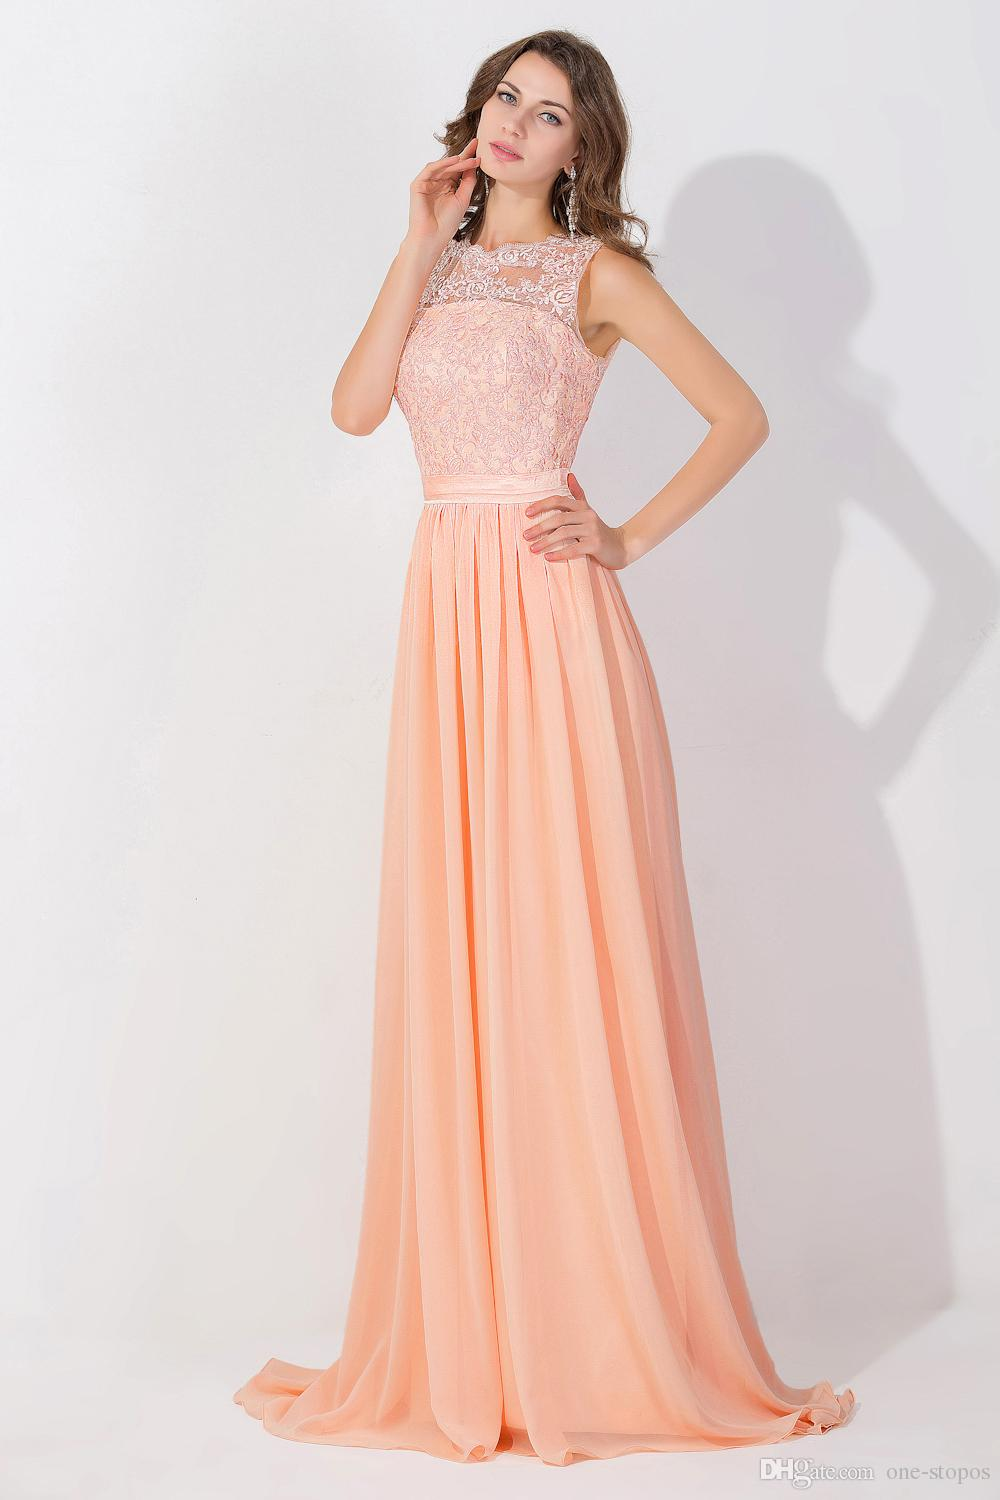 Designer Bridesmaids Dresses - Qi Dress